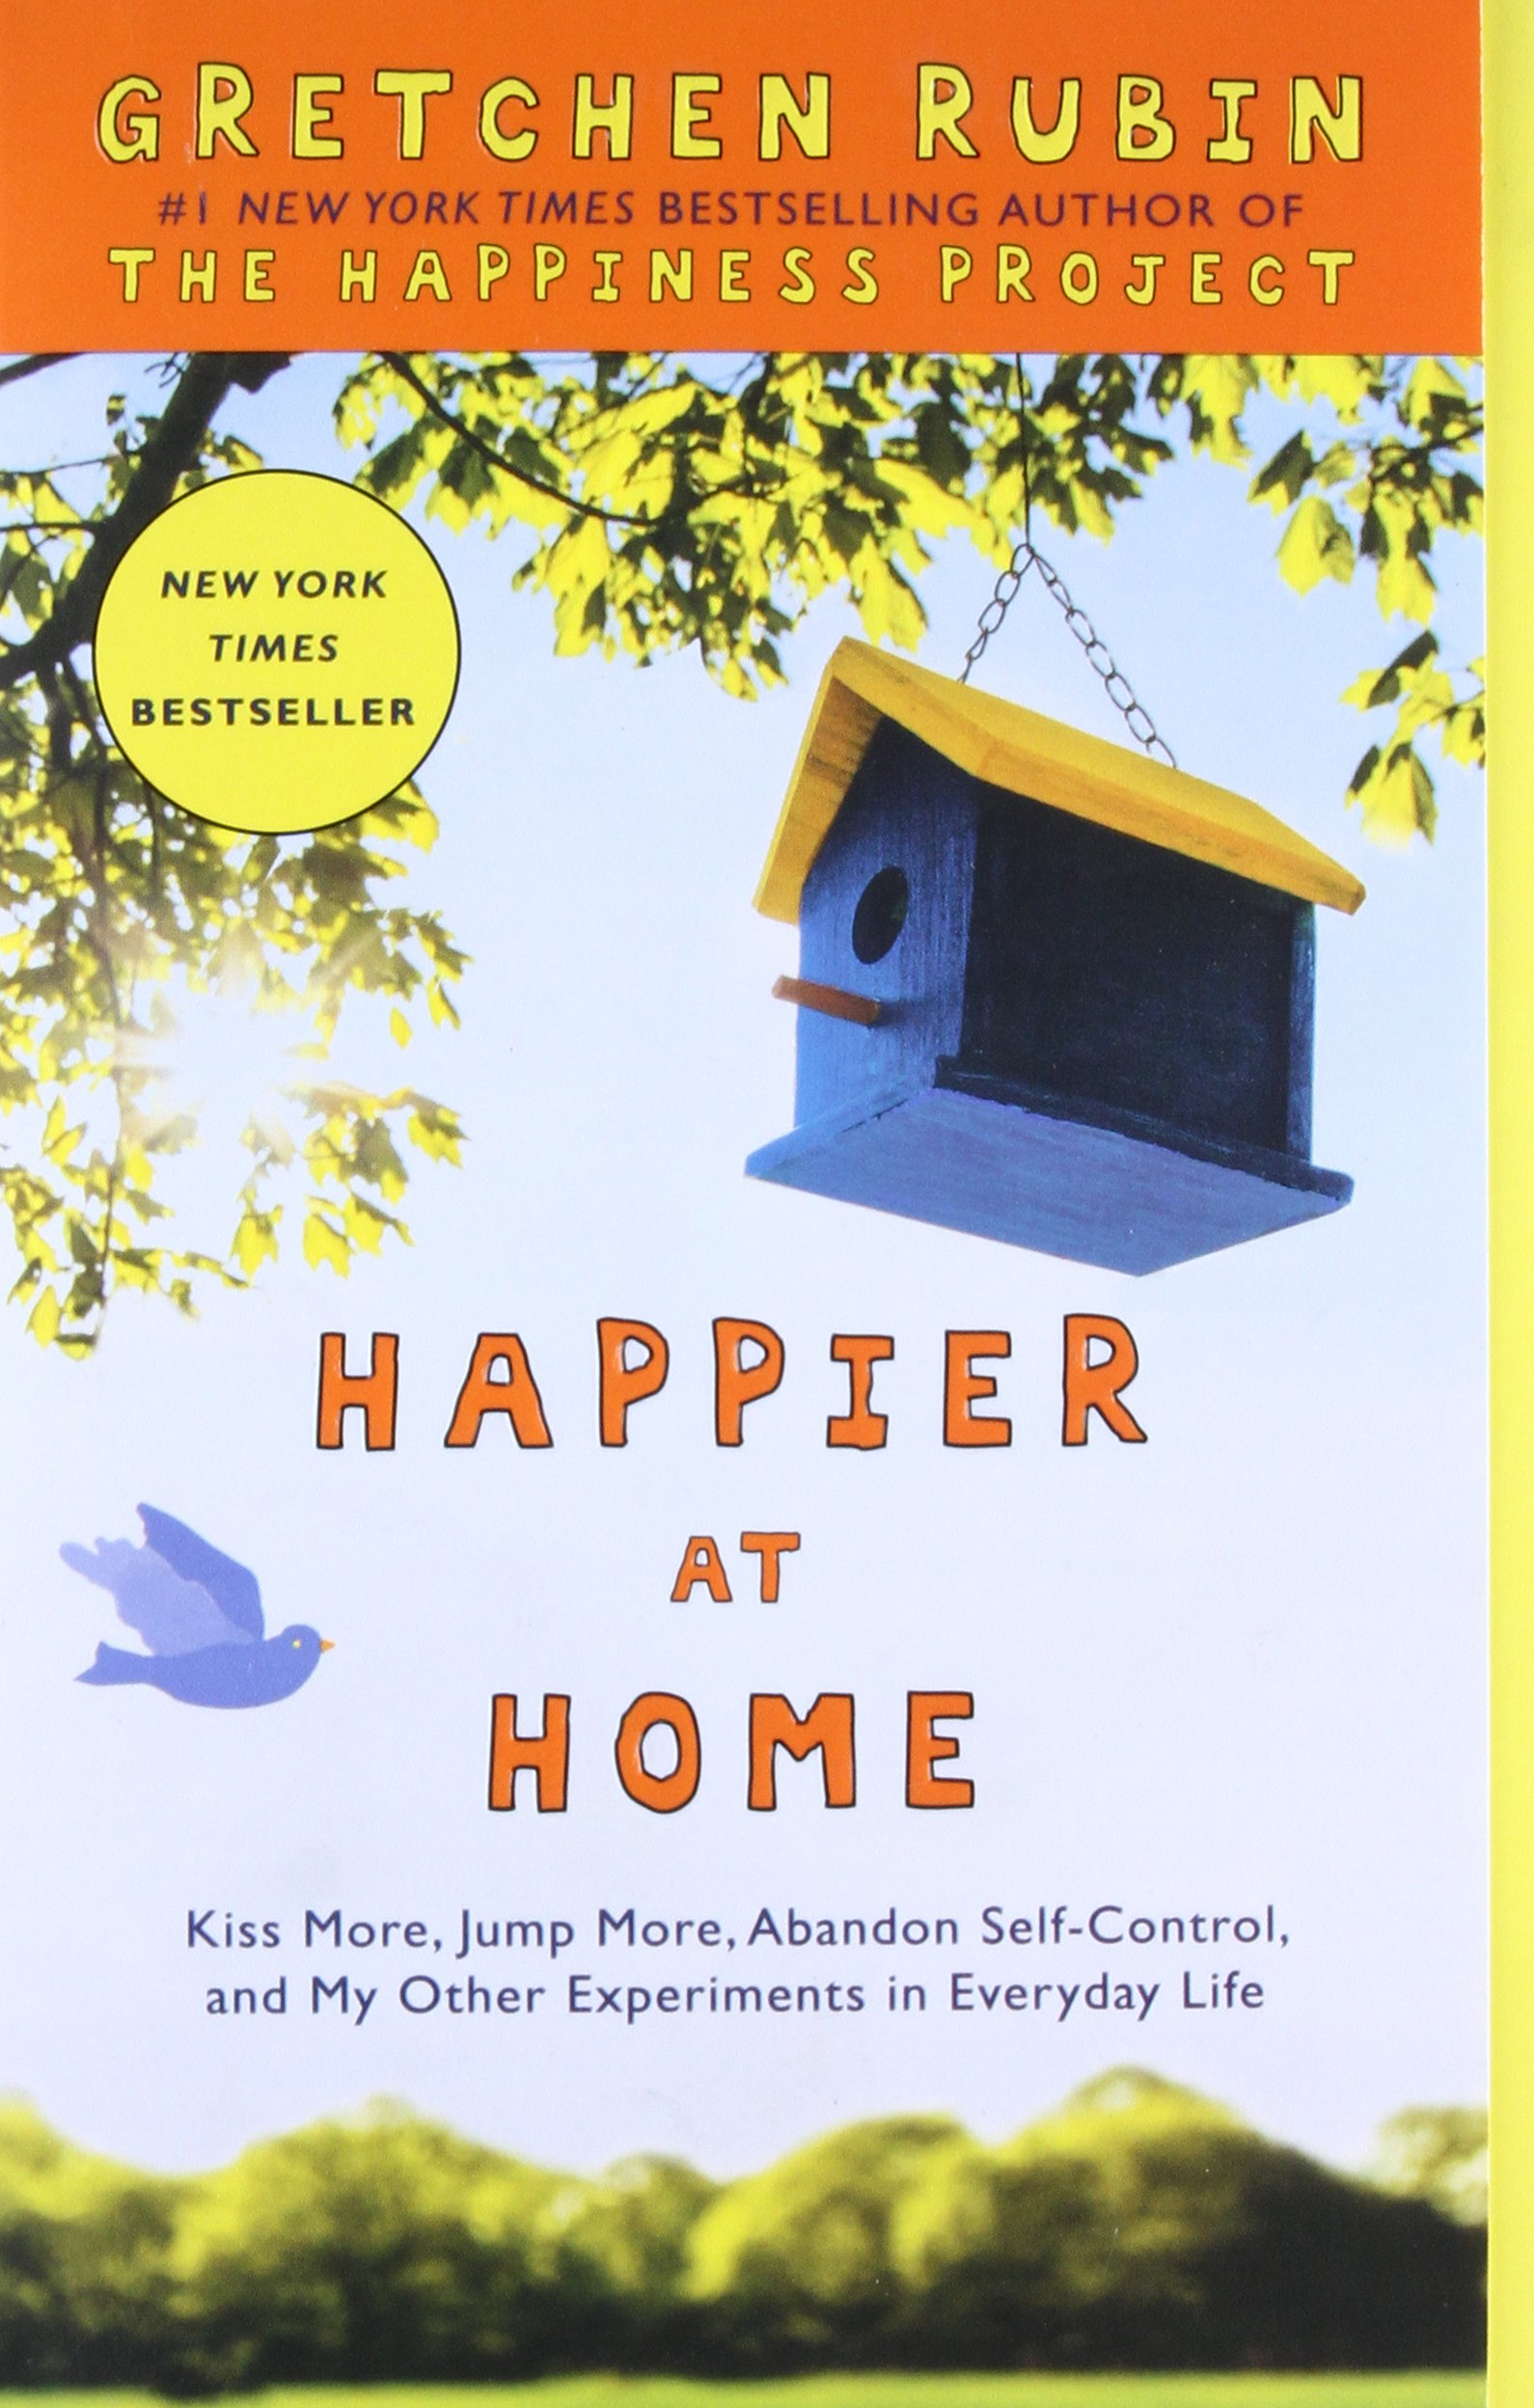 Happier Home Self Control Experiments Everyday product image